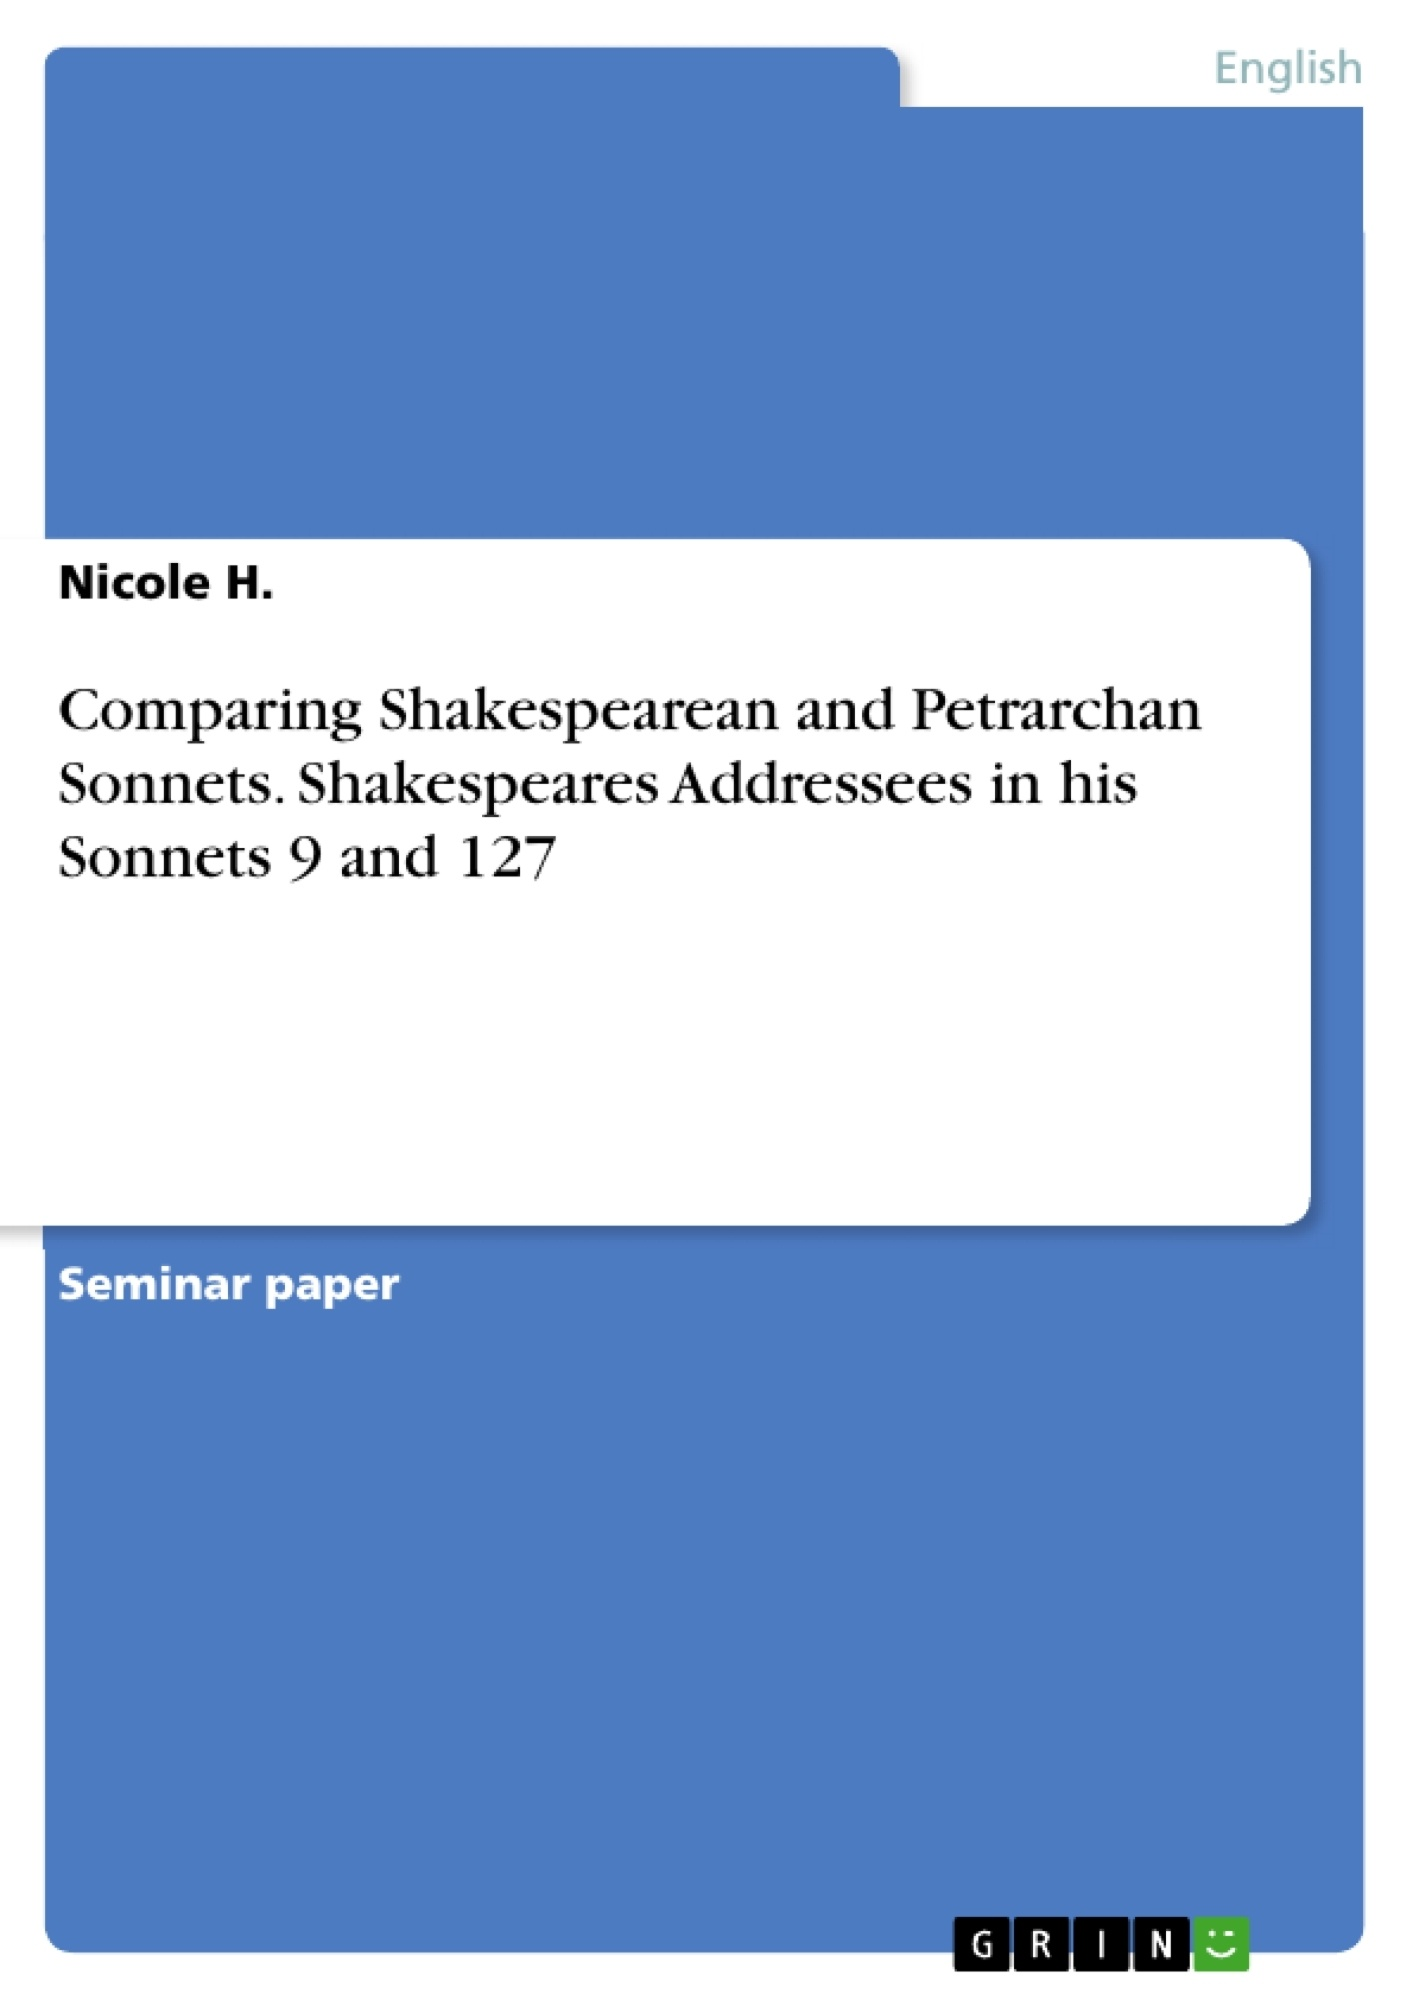 Title: Comparing Shakespearean and Petrarchan Sonnets. Shakespeares Addressees in his Sonnets 9 and 127